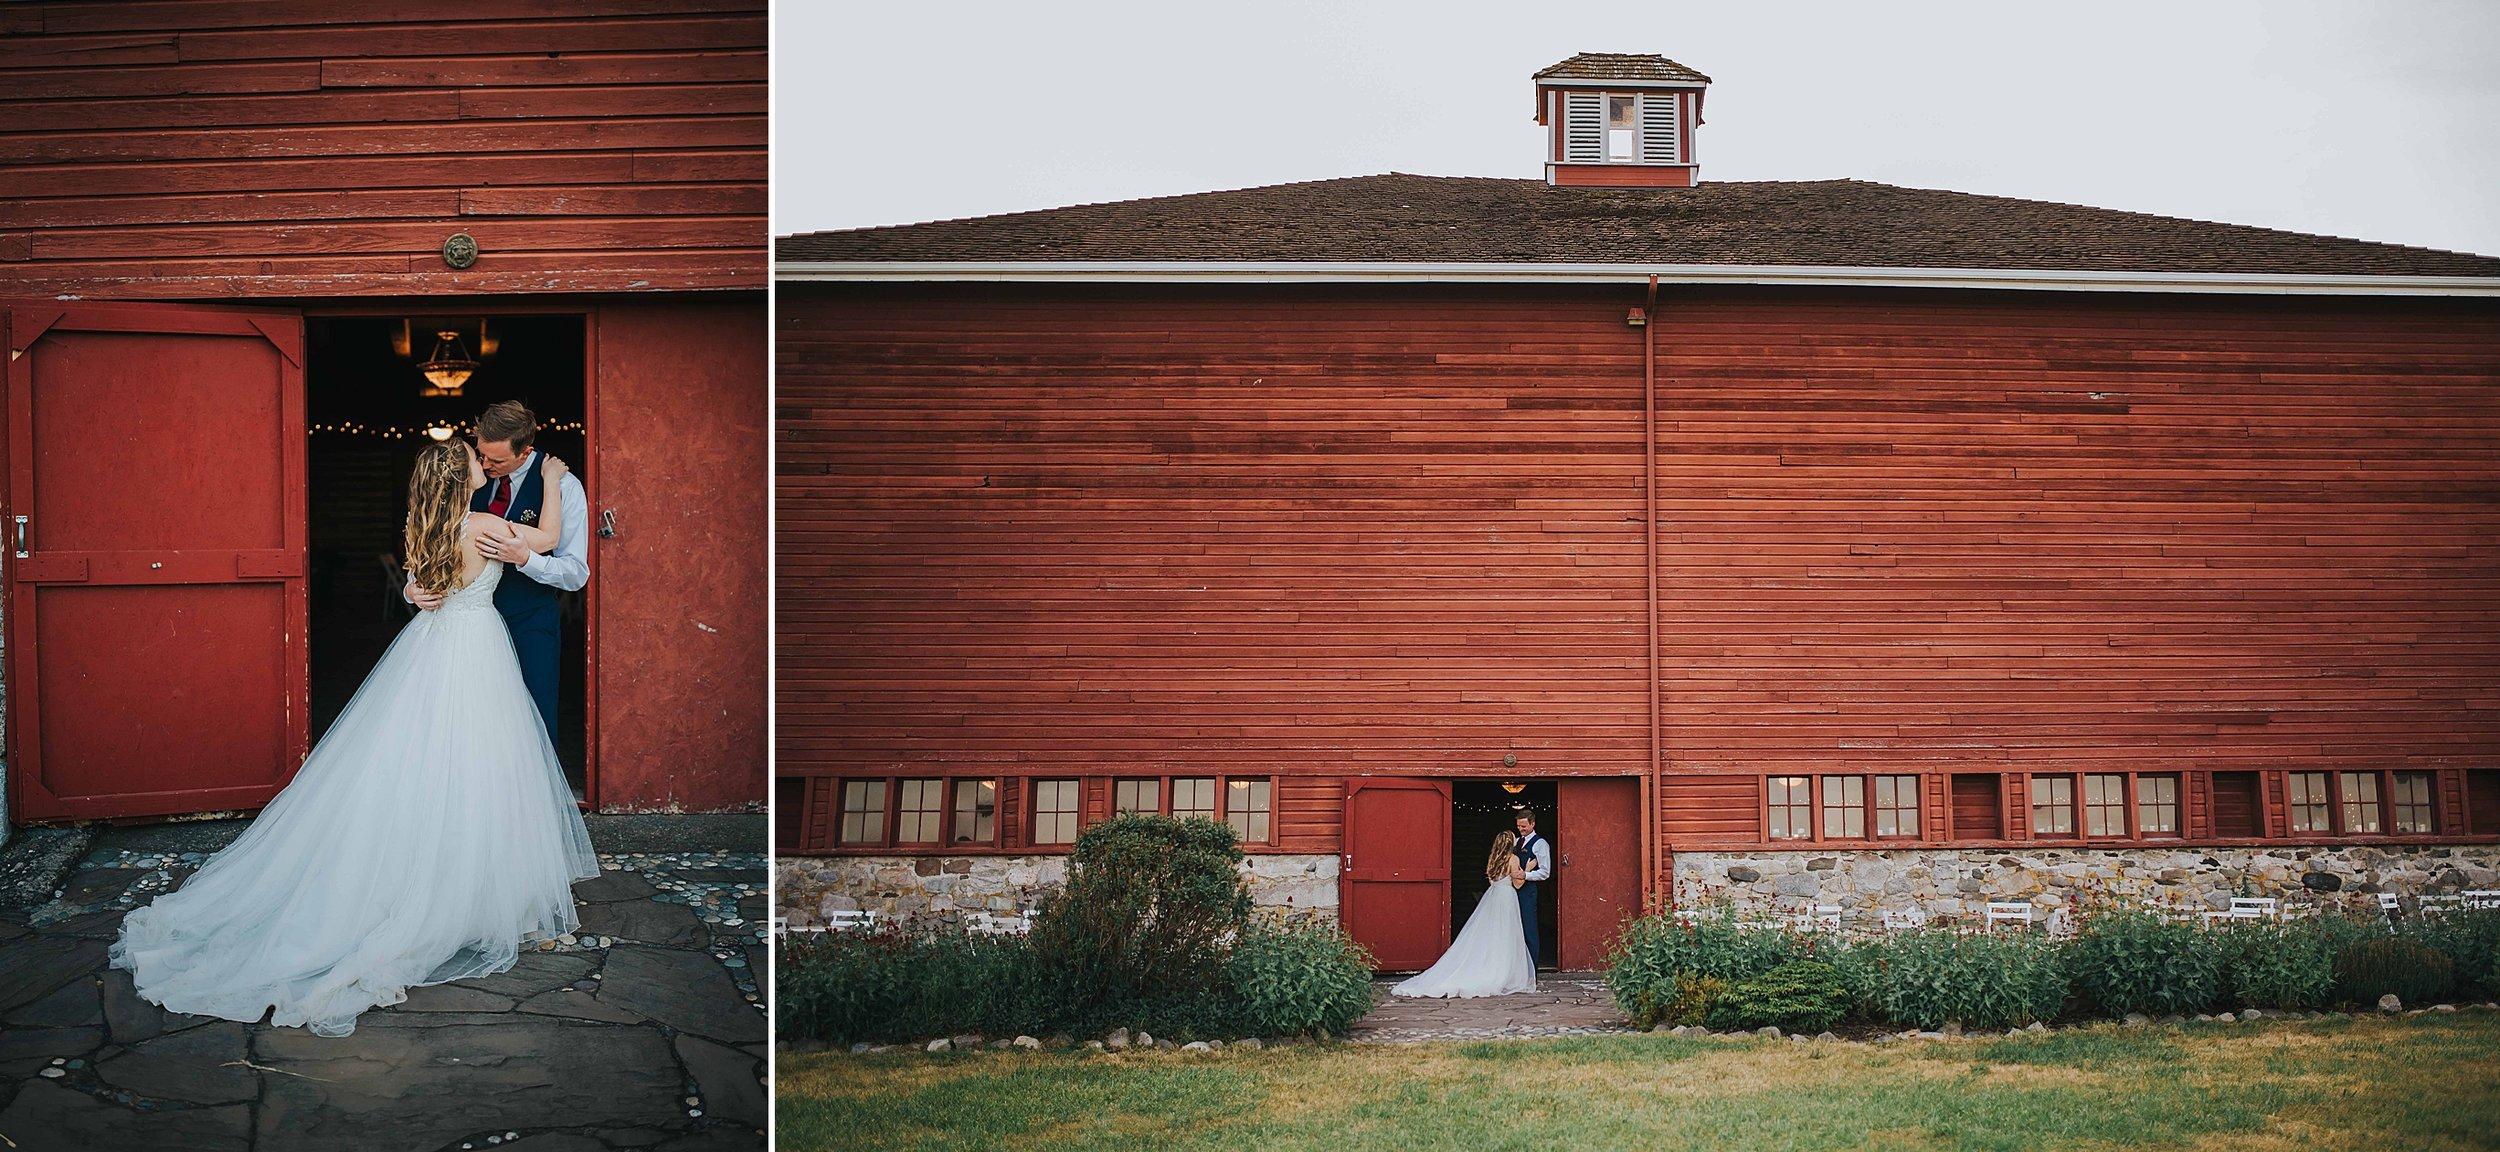 Crockett Farm-Wedding-photographer-J HODGES PHOTOGRAPHY_0301.jpg